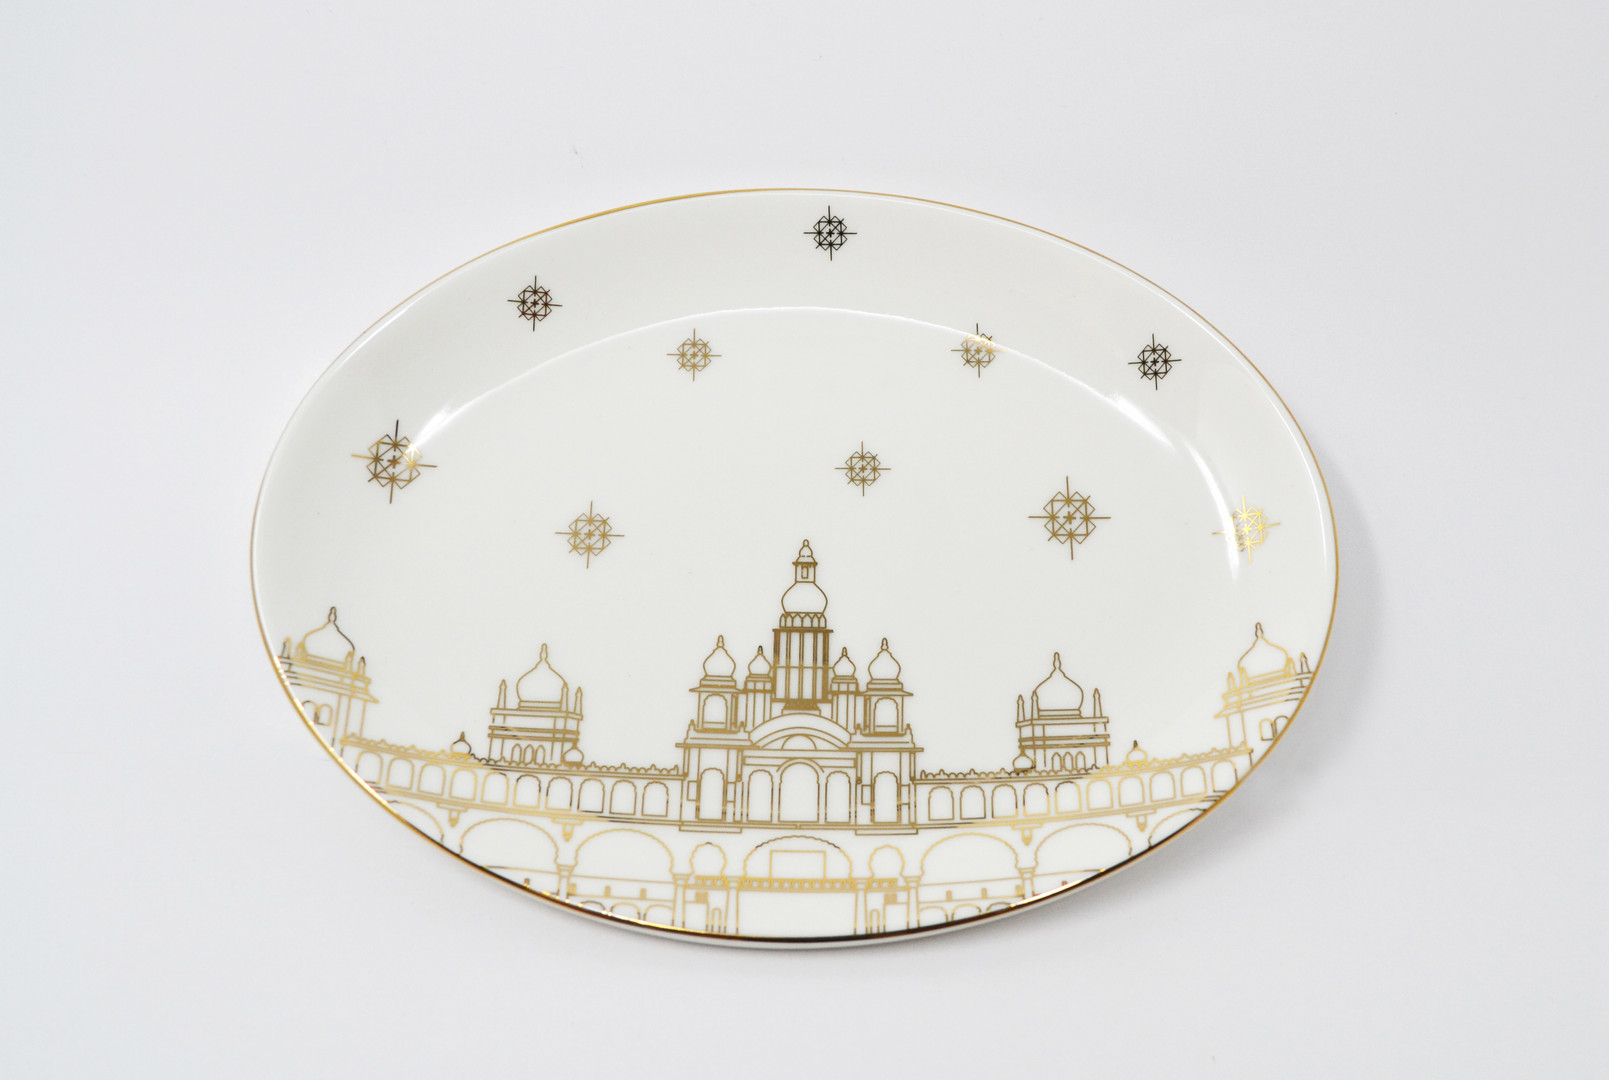 BIAL Mysore Palace Plate